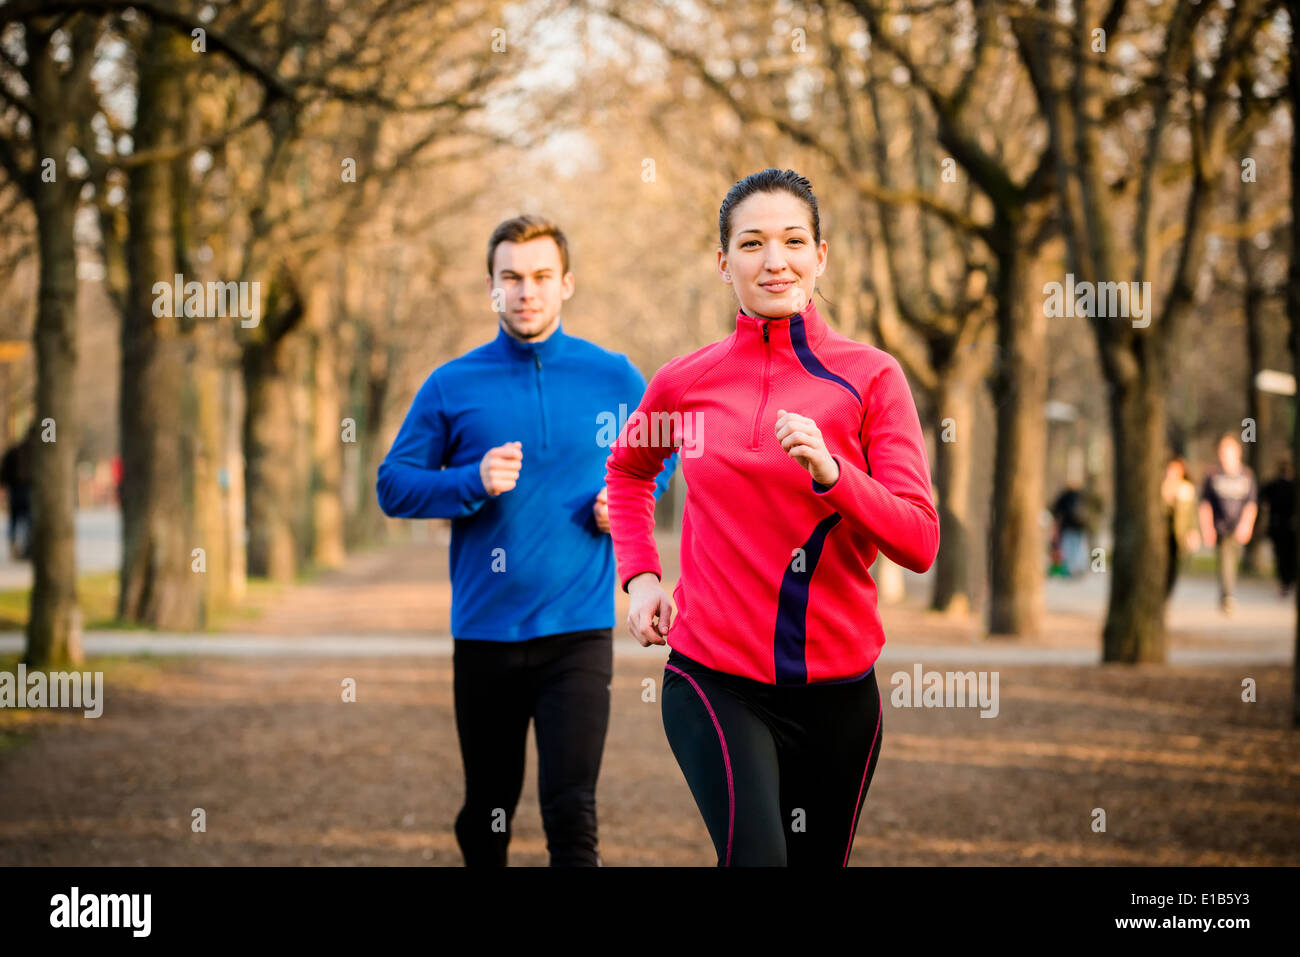 Jogging couple - young man and woman competing, woman first - Stock Image